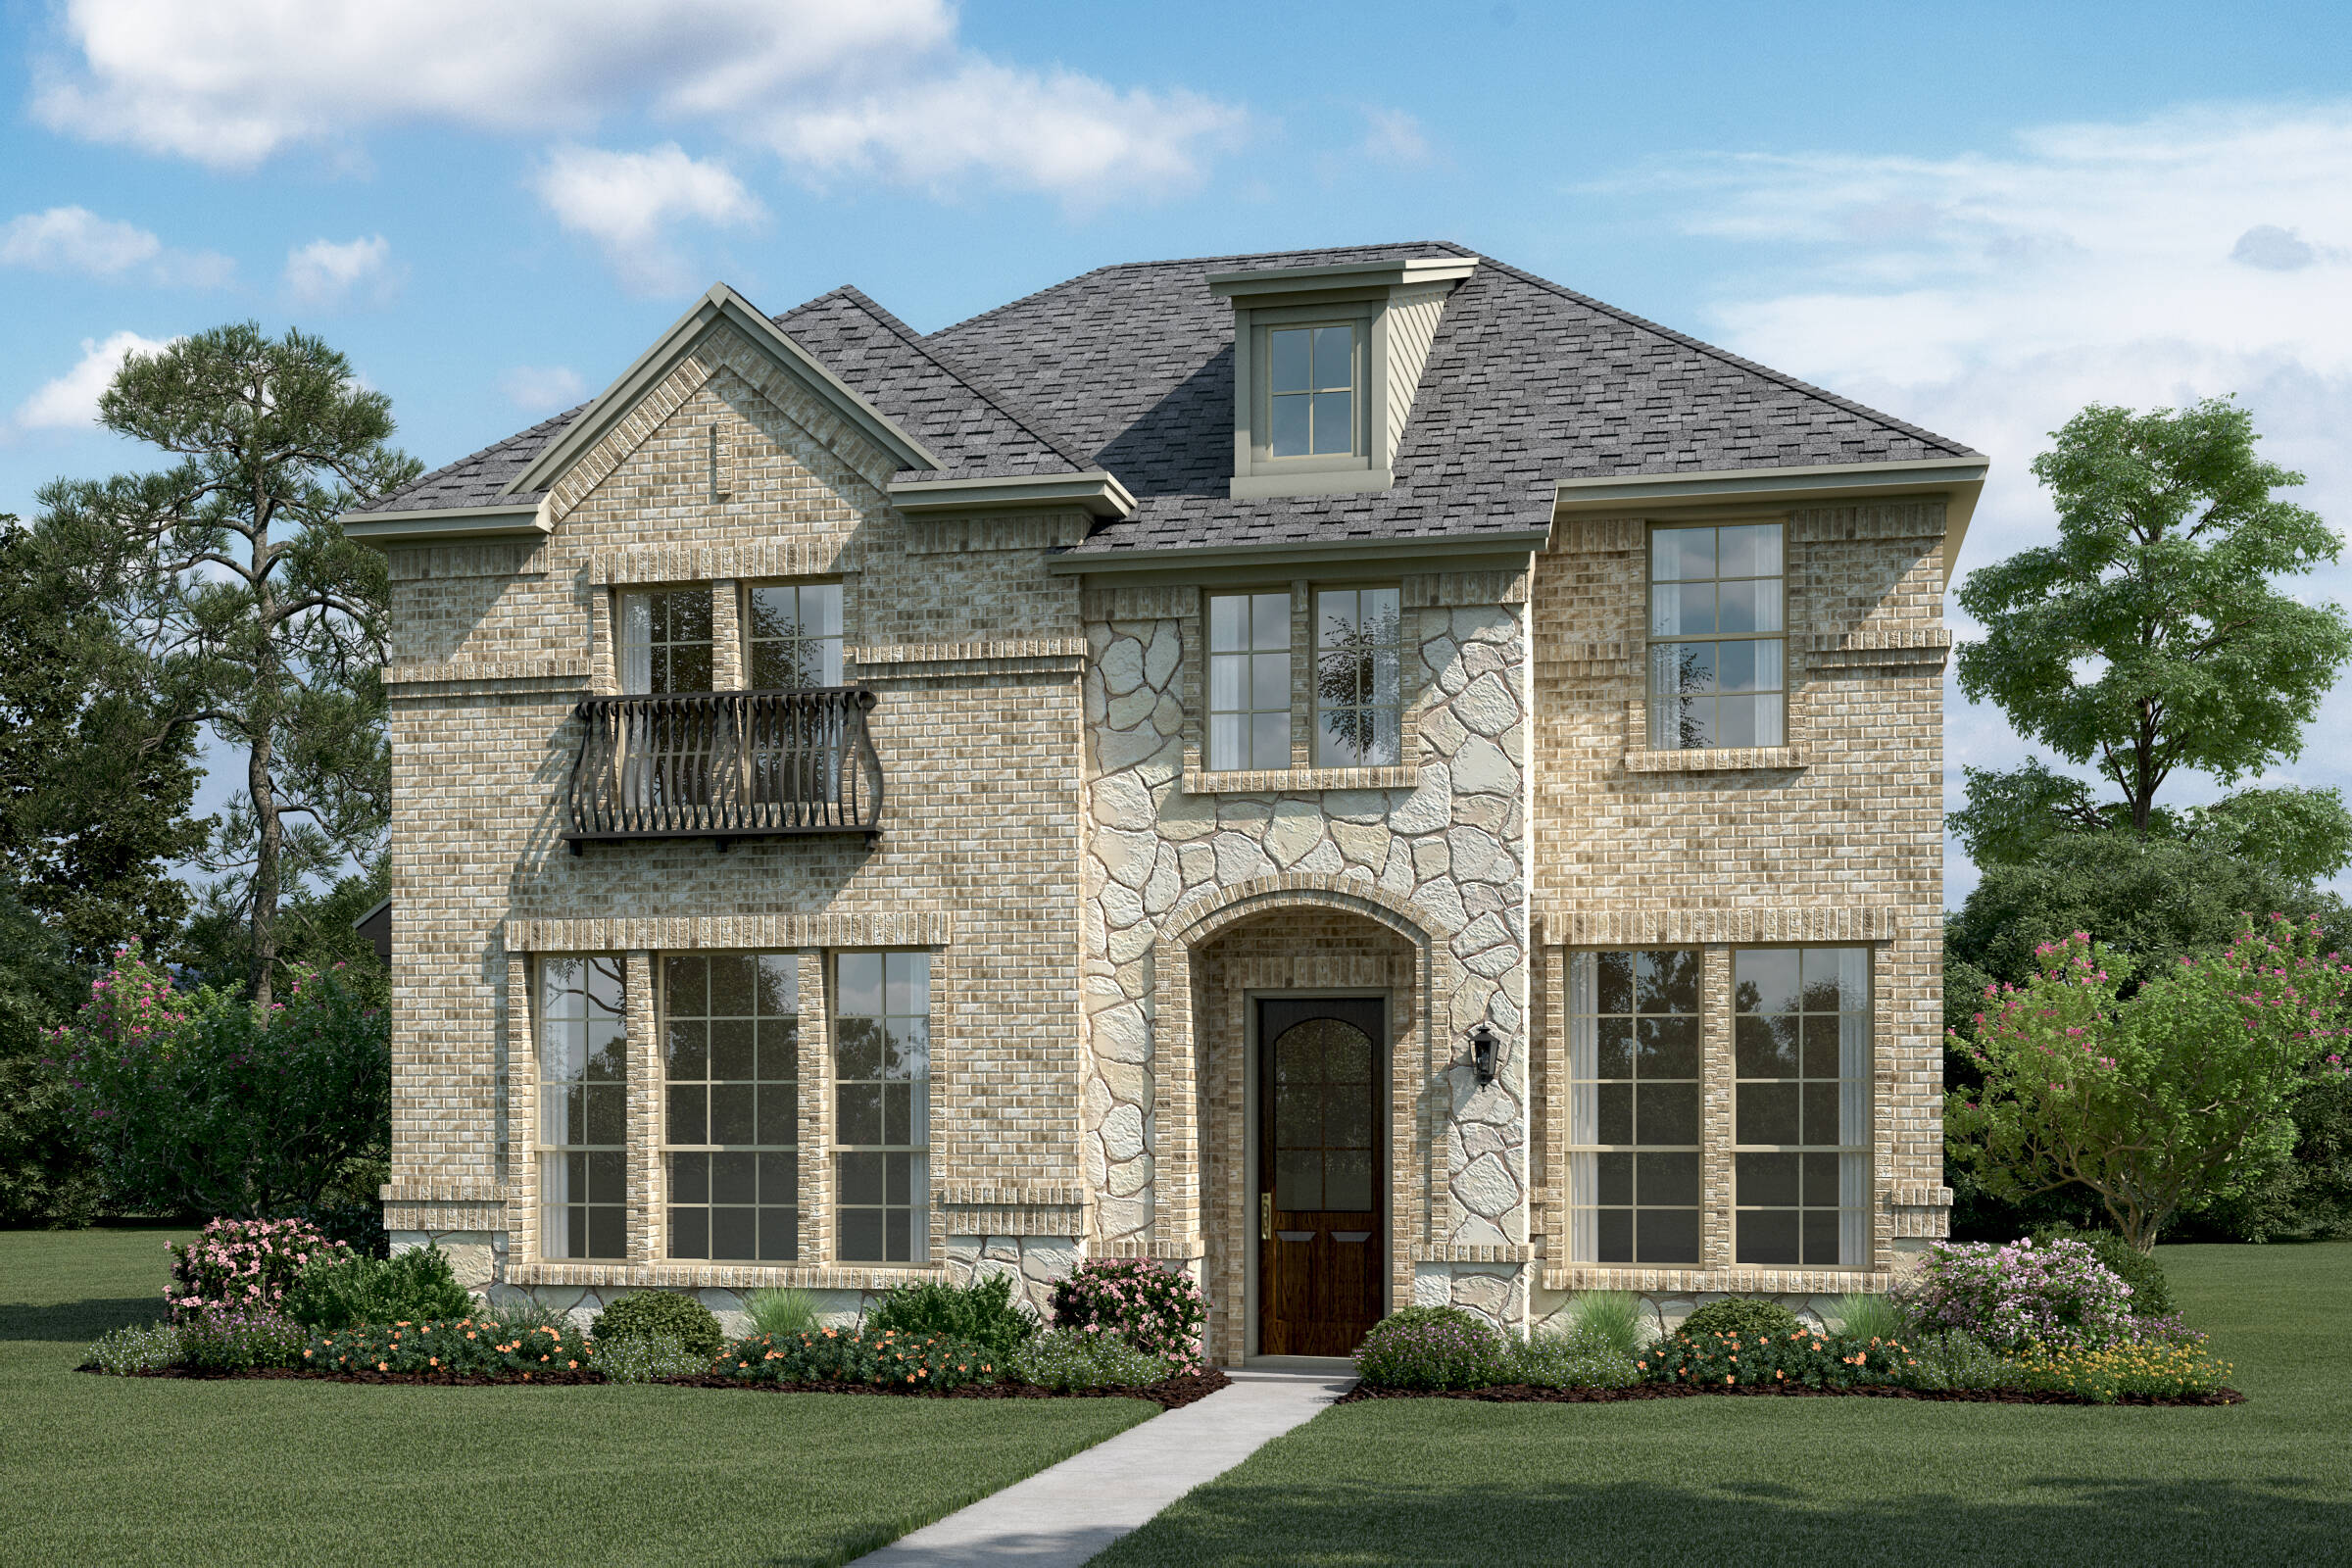 glenchester-t-stone-elev-new-homes-near-dallas